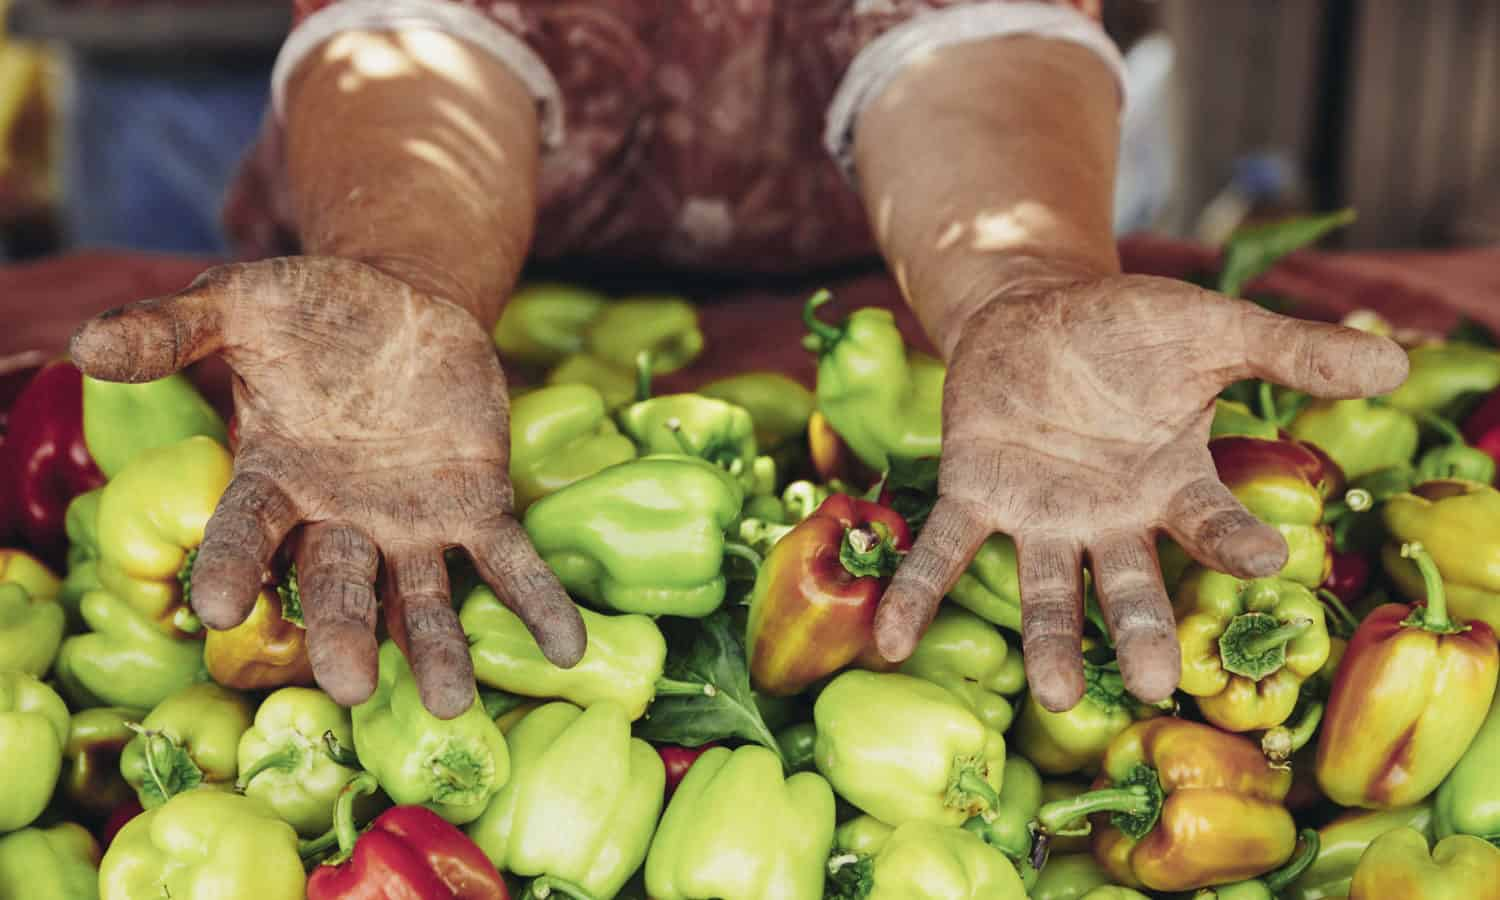 Today marks 100 days since Hurricane Maria made landfall, and Puerto Rico is still importing 95 percent of its food. It's time to prioritize the island's right to food security by way of food sovereignty.